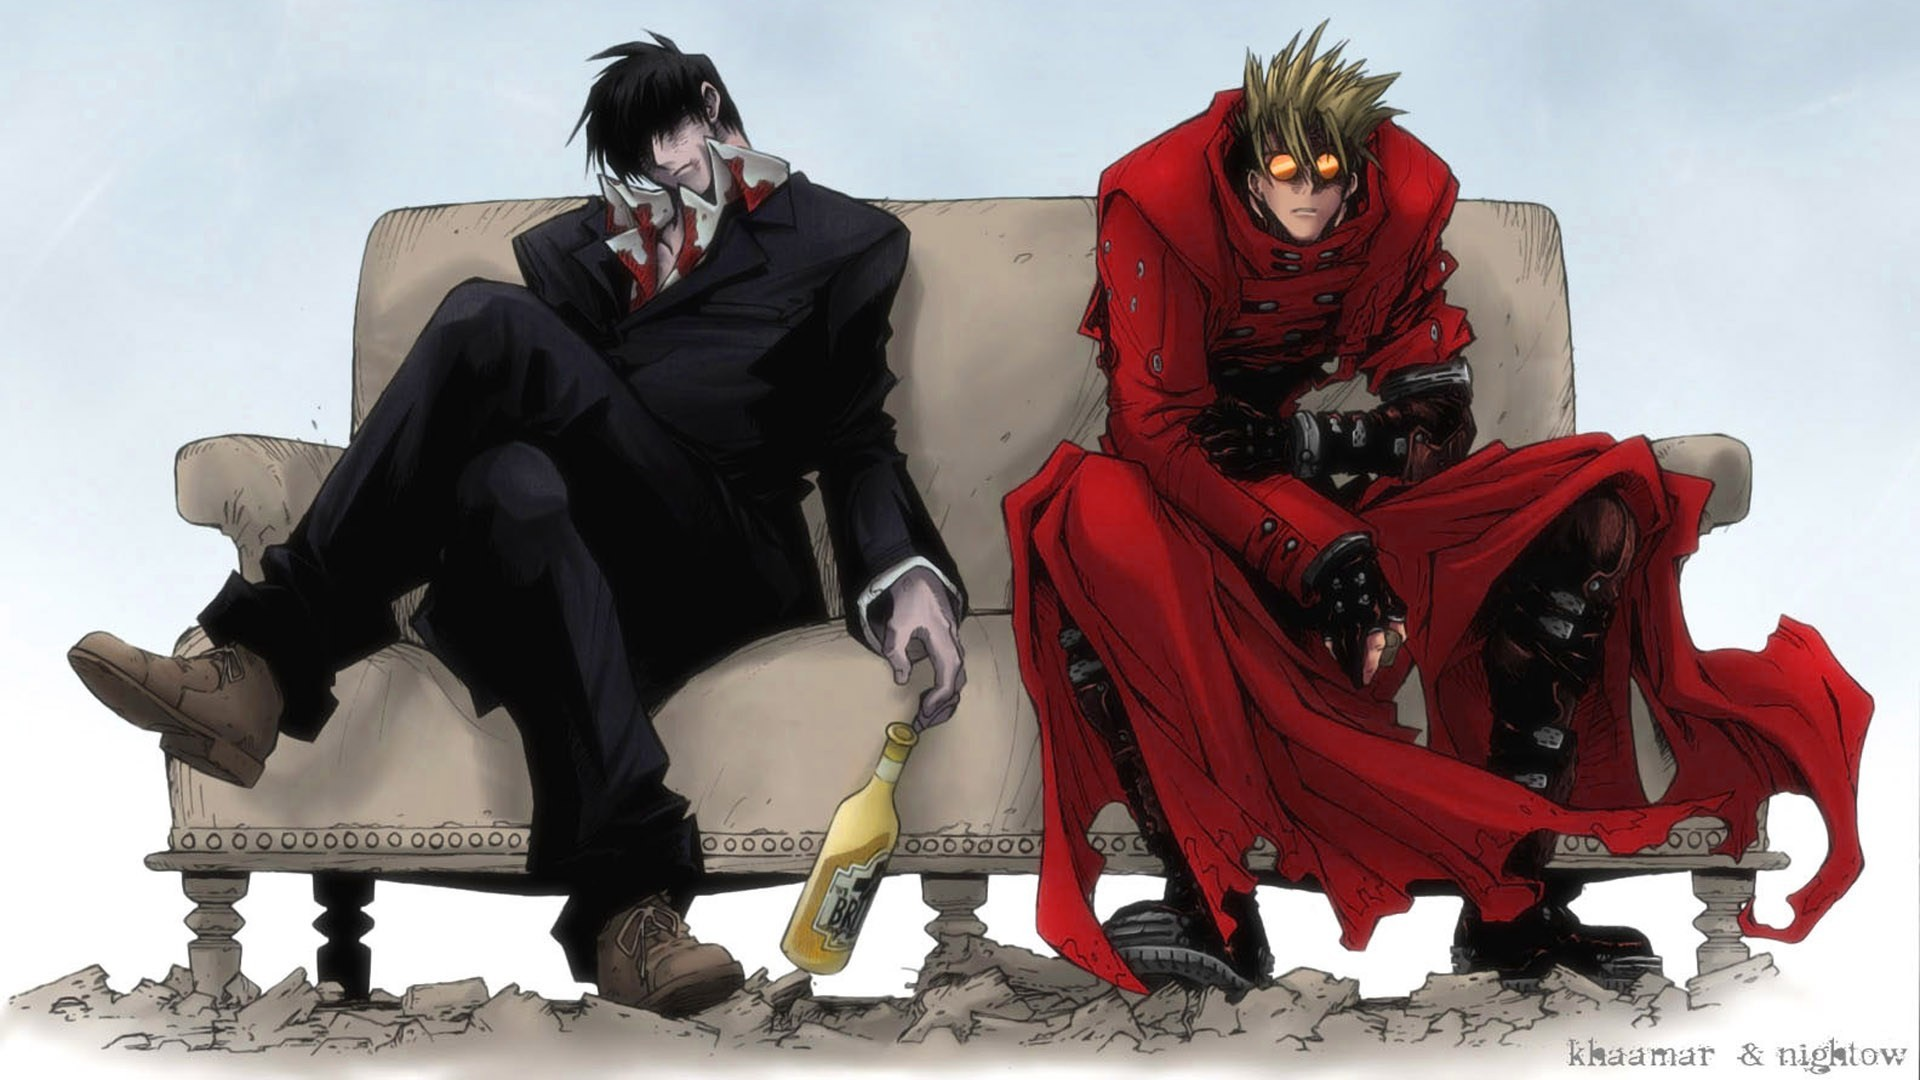 Res: 1920x1080, Vash the Stampede Trigun Nicholas D. Wolfwood 1080p HD Wallpaper Background